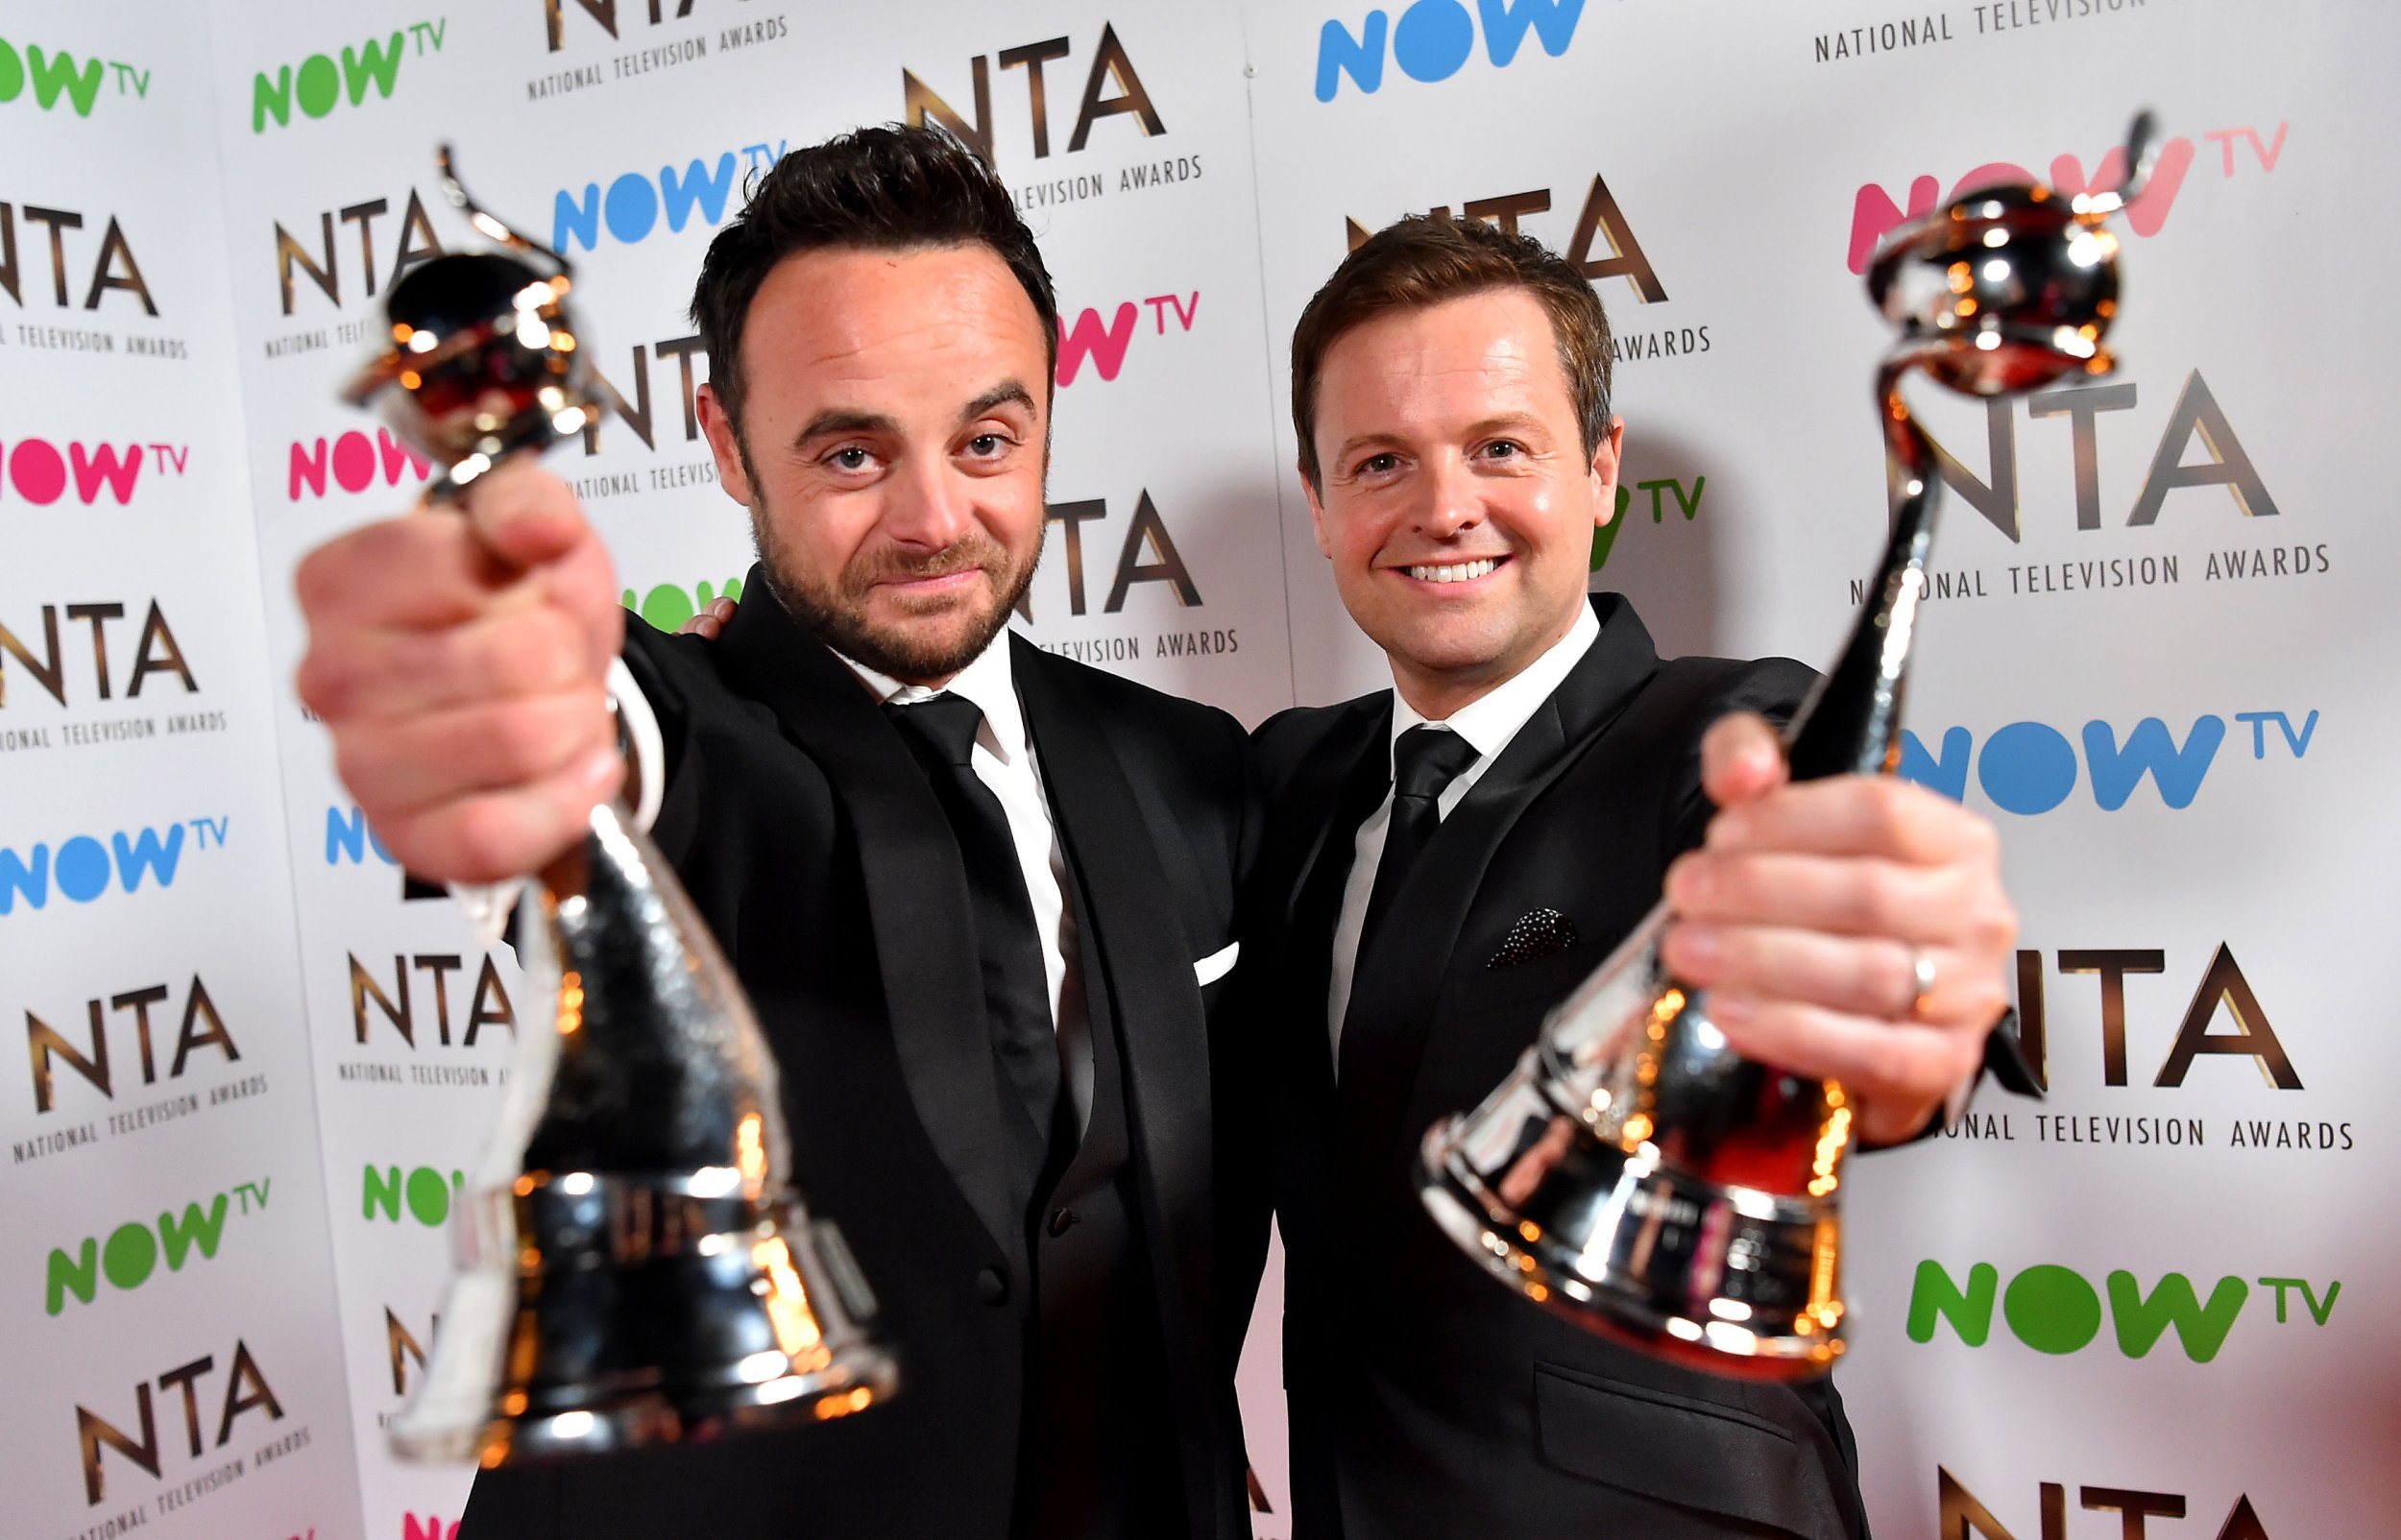 Ant and Dec win Best TV Presenters at the National Television Awards AGAIN